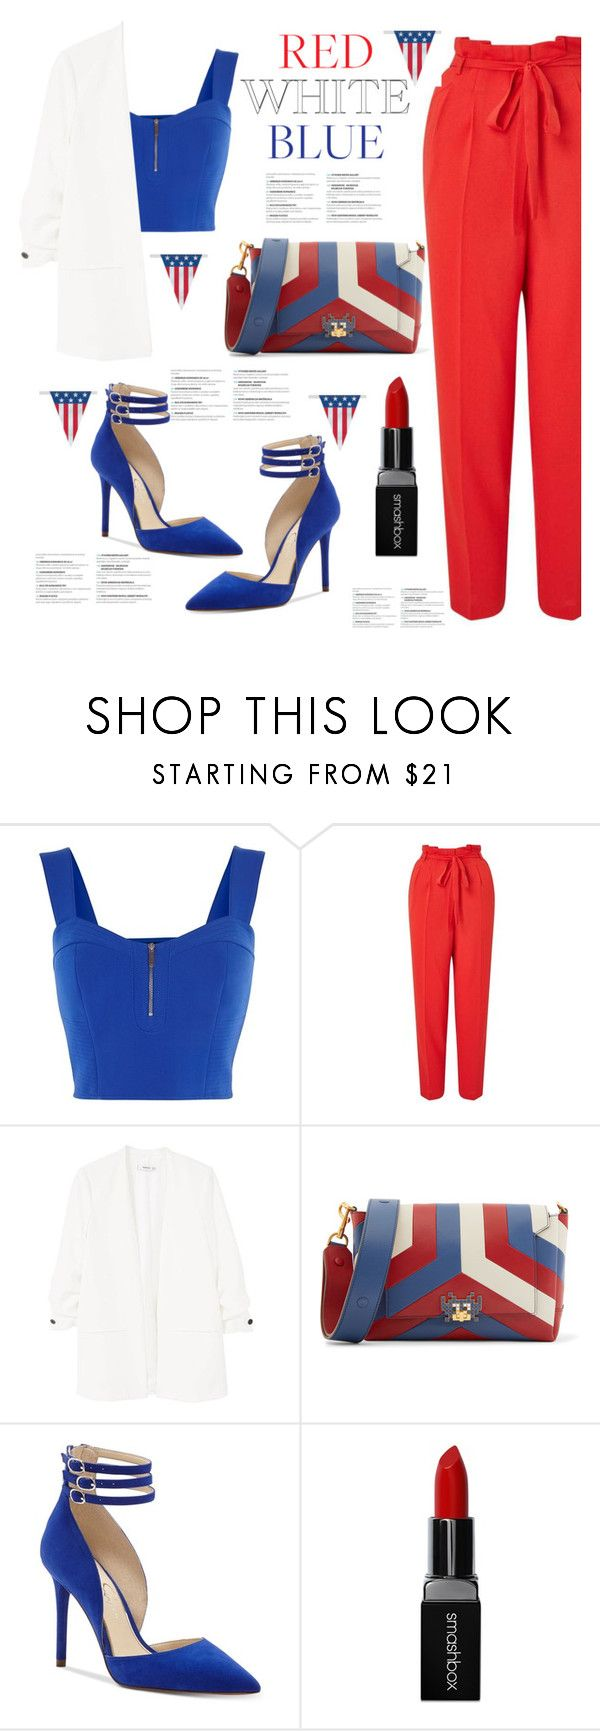 """""""Red, White & Blue: Celebrate The 4th!"""" by blackadonia ❤ liked on Polyvore featuring Karen Millen, Miss Selfridge, MANGO, Anya Hindmarch, Jessica Simpson, Smashbox and fourthofjuly"""